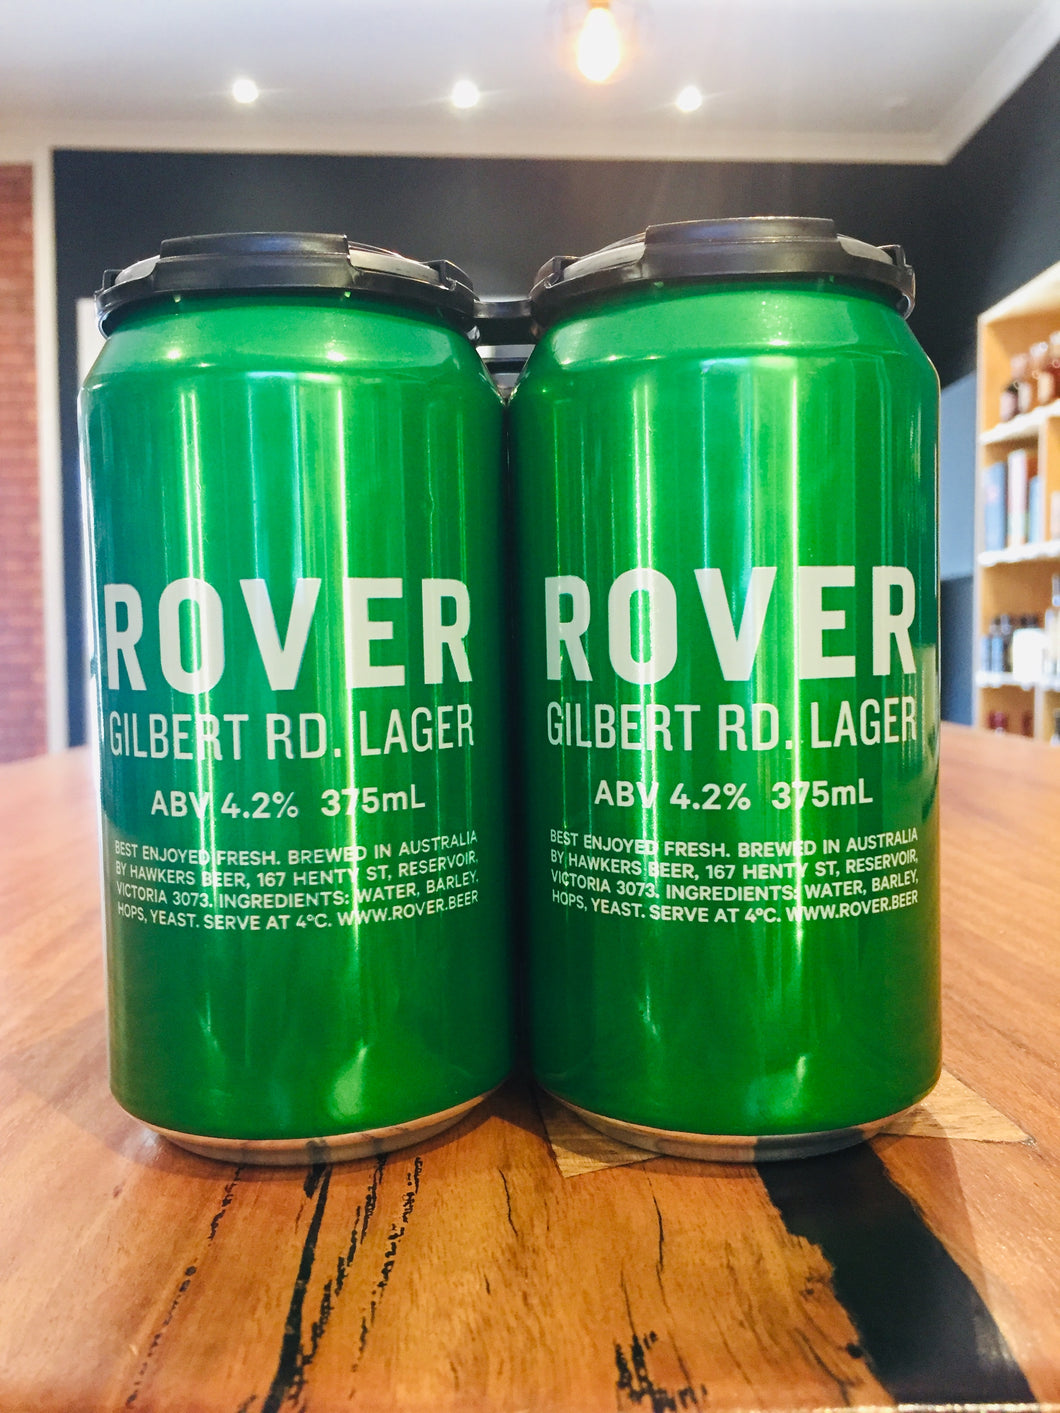 Hawkers Rover Gilbert Rd Lager